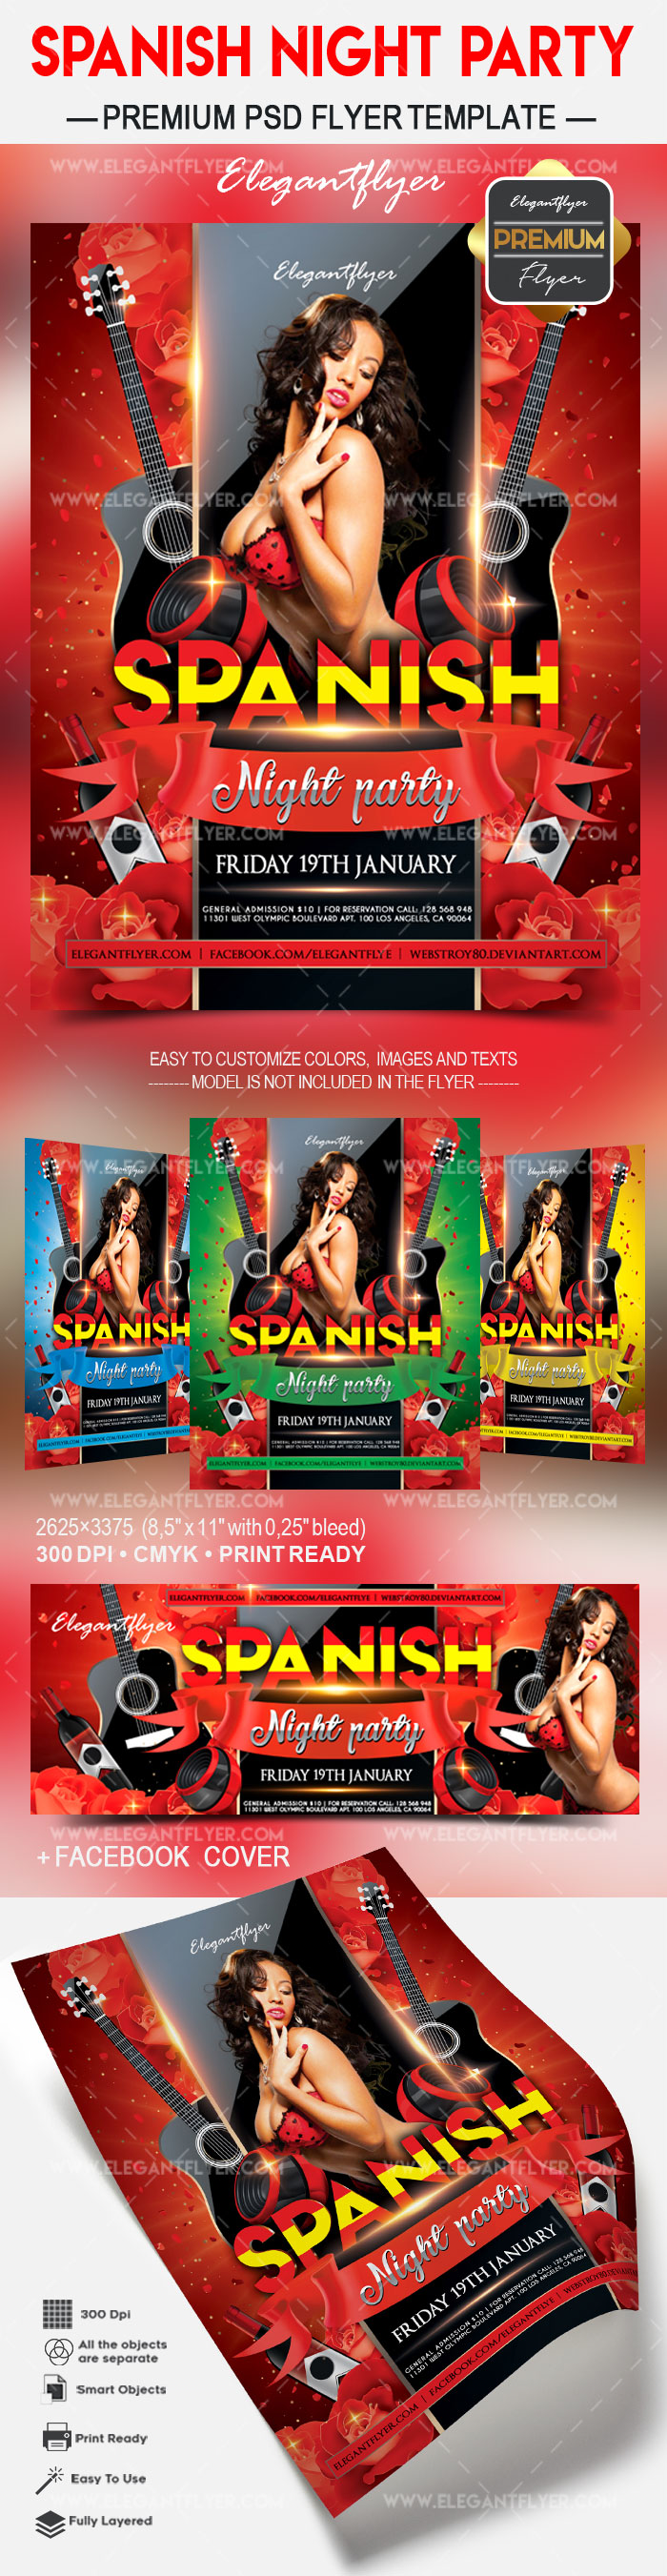 Spanish night party – Flyer PSD Template